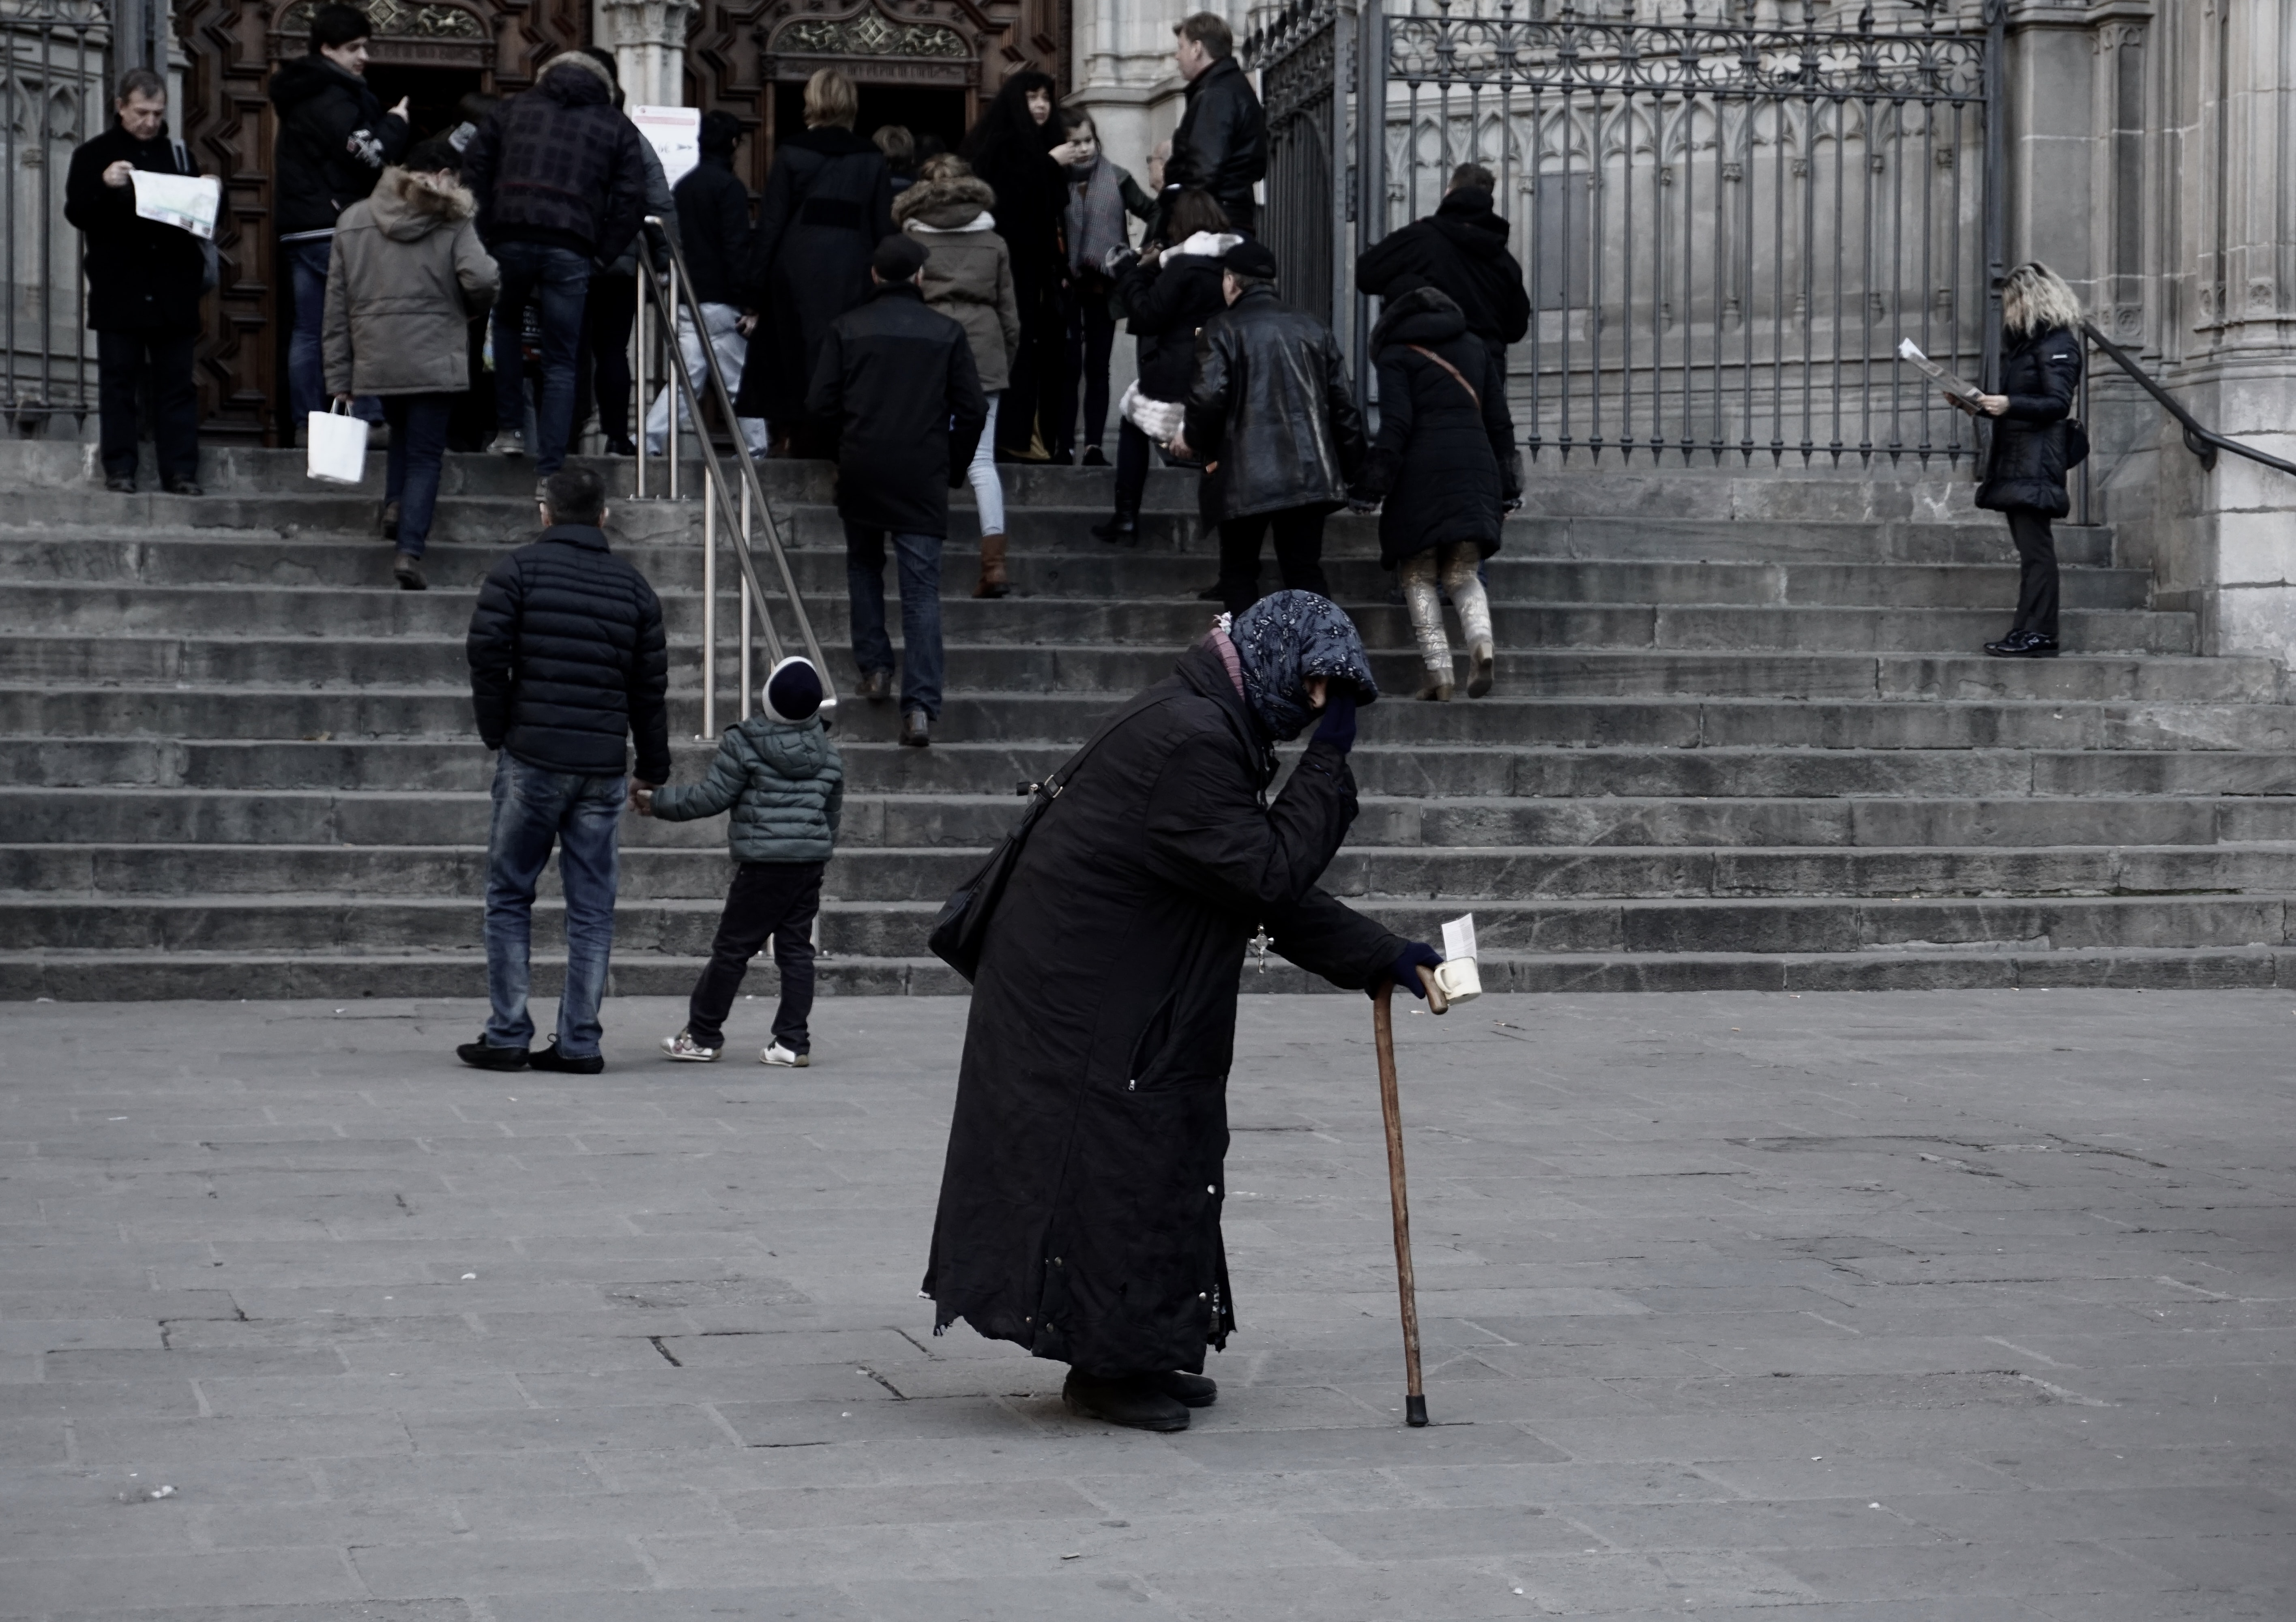 Elderly person with a walking cane standing near a crowd of people